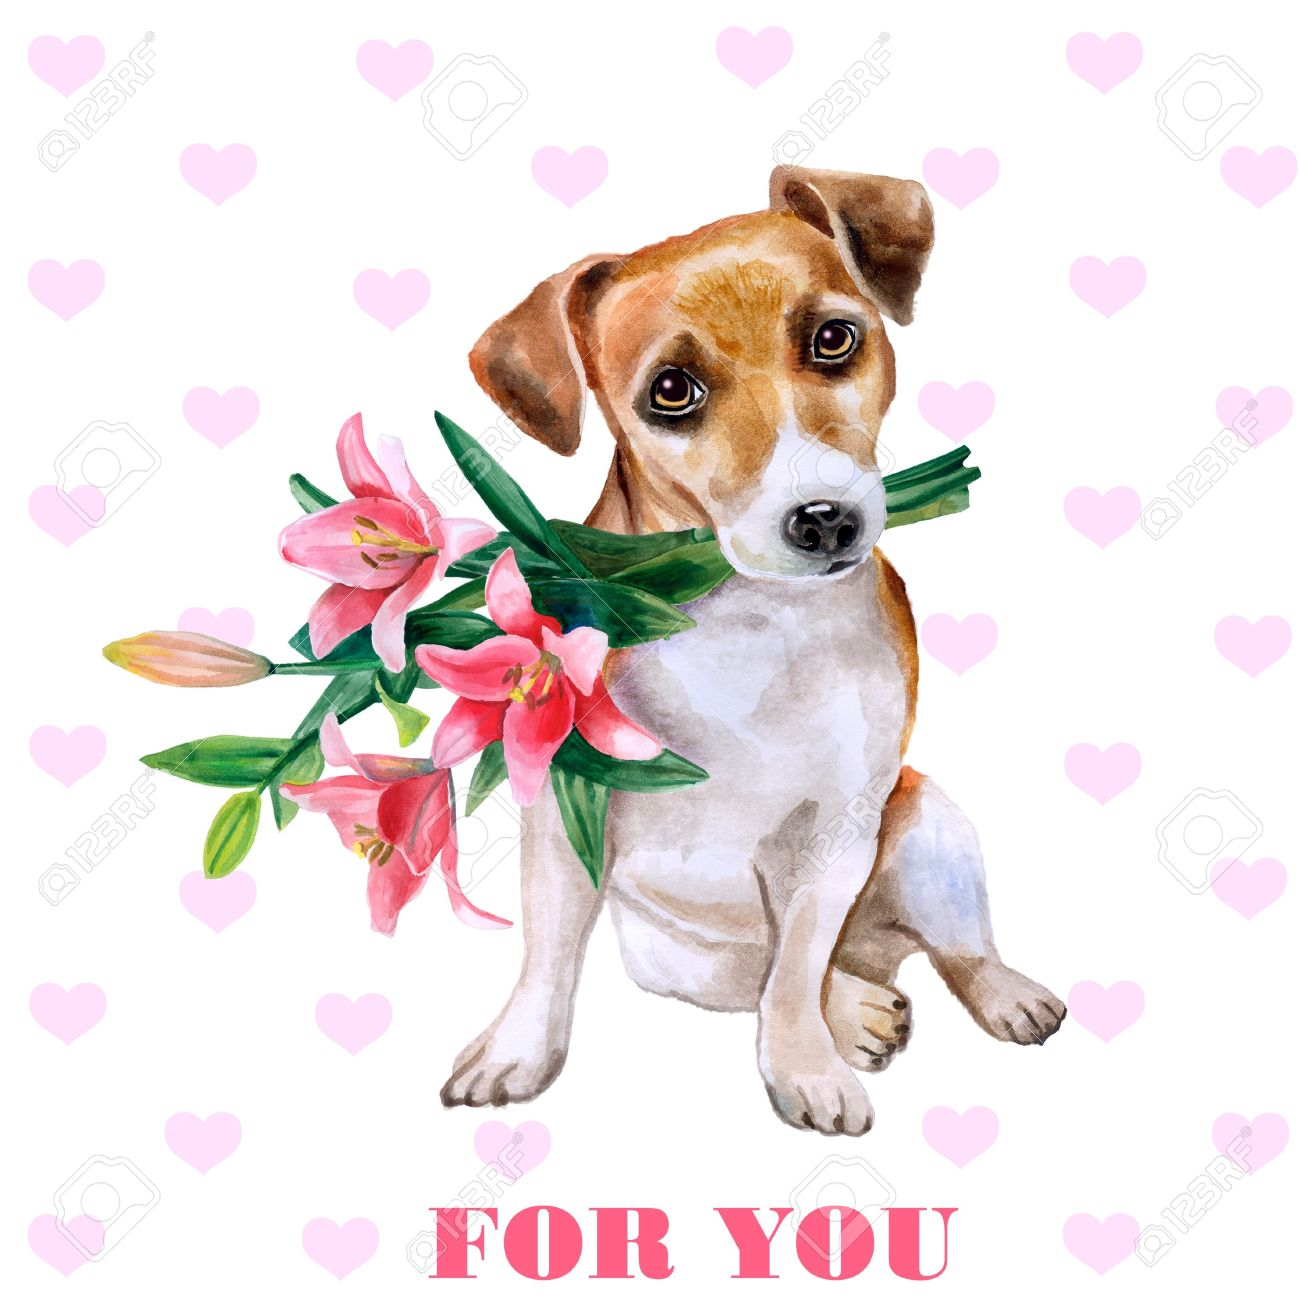 Dog With Flowers Cute Puppy With Romantic Bouquet Flower Backdrop